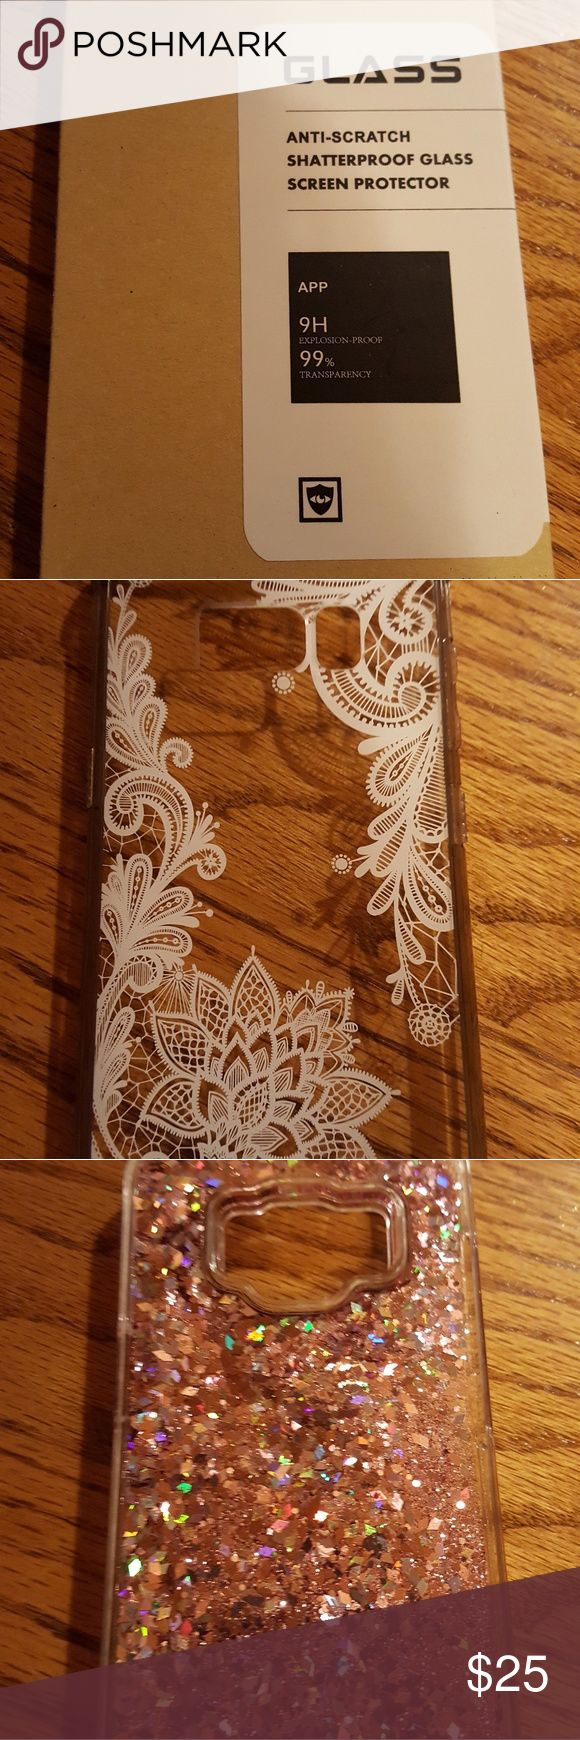 Galaxy S8 Phone Cases And Screen Protector Galaxy S8 Phone Cases And Screen Protector Accessories Phone Cases